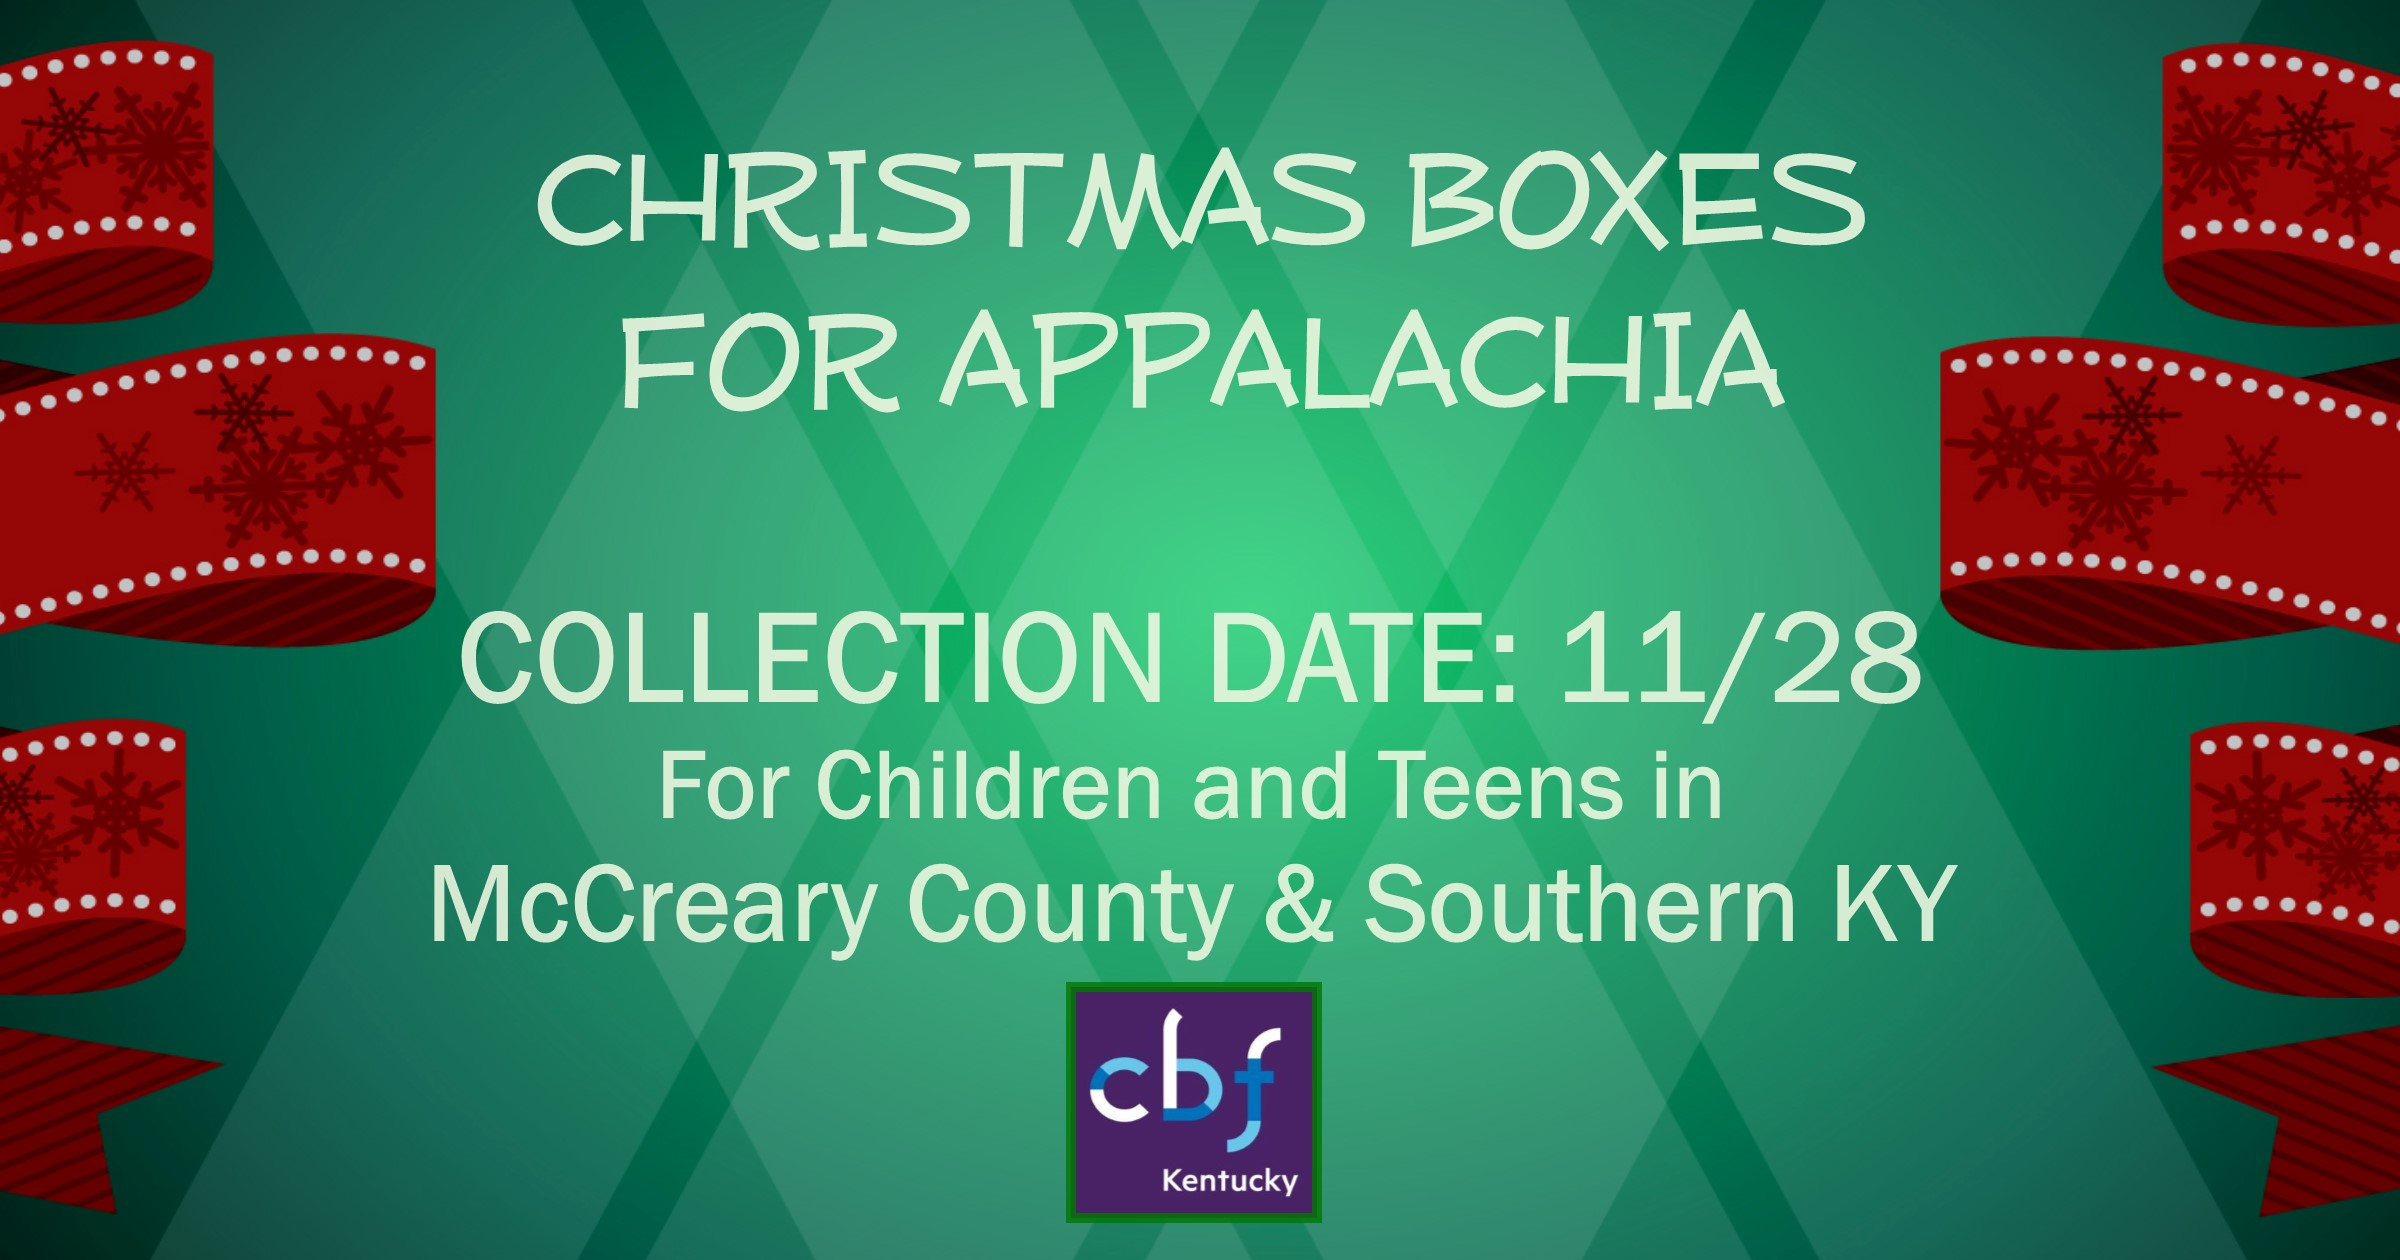 christmas boxes appalachia facebook link 110118.jpg